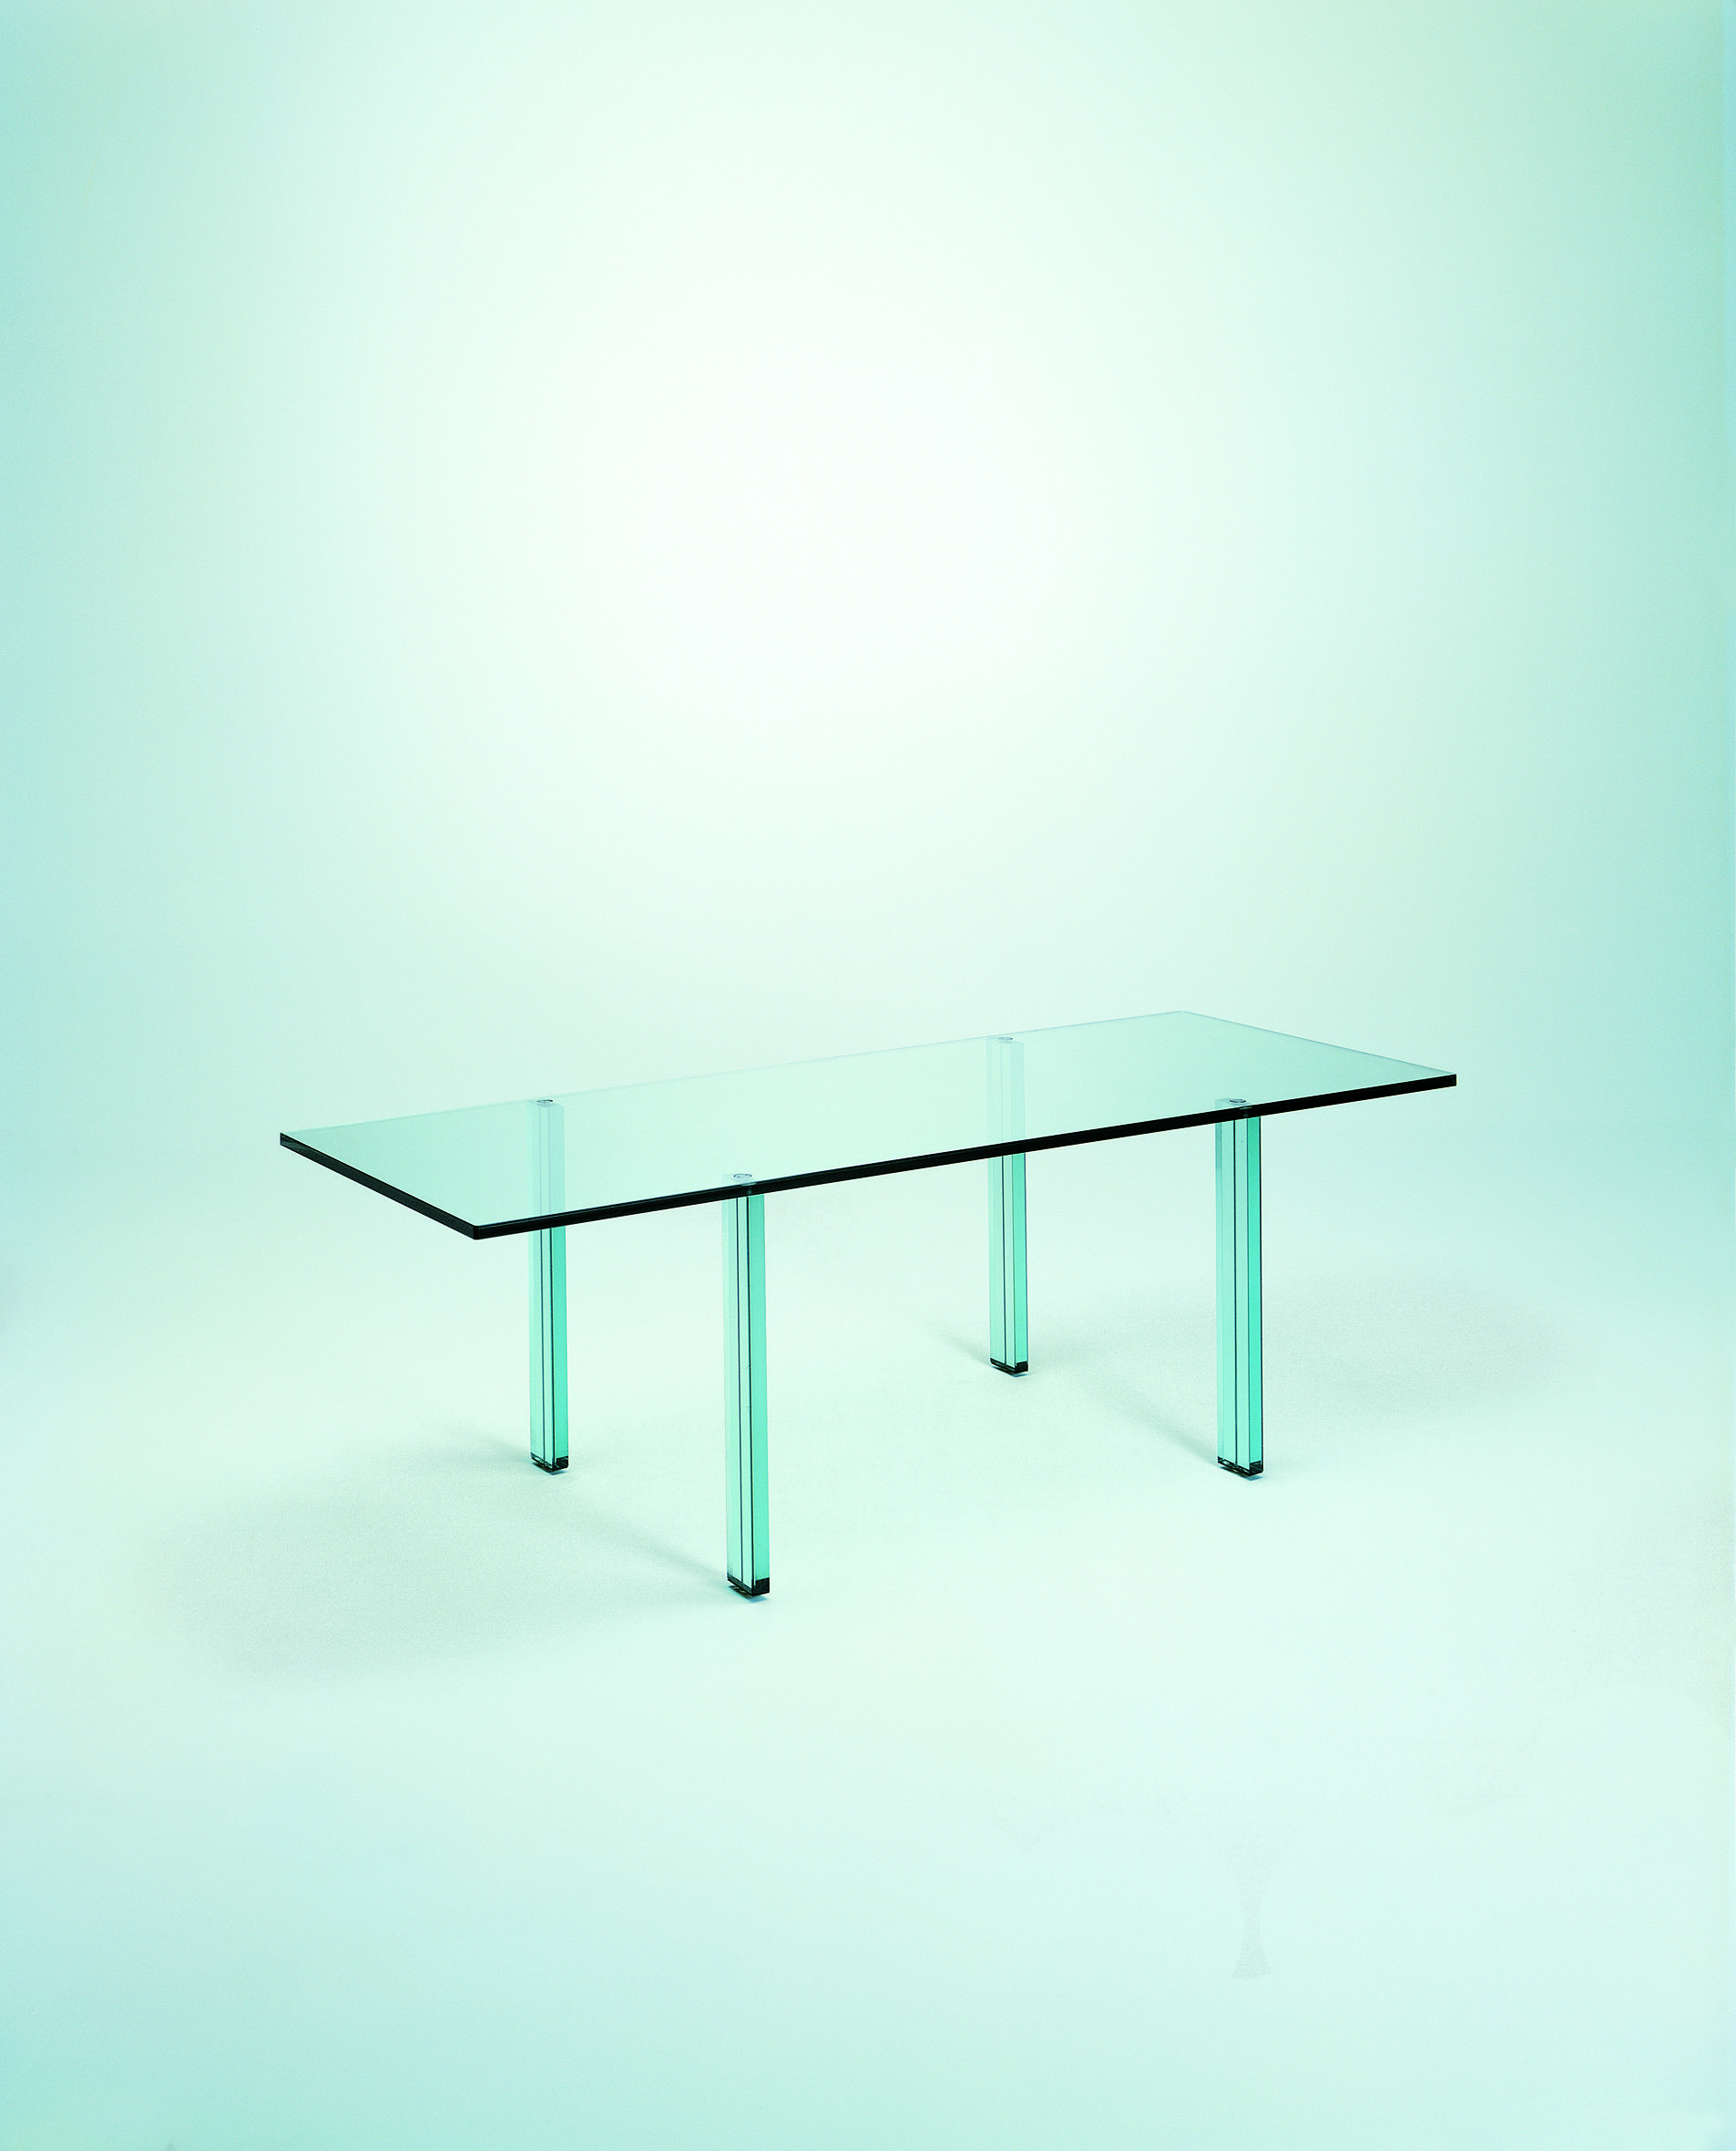 Renzo piano made his design debut with a coordinated line of furnishing systems for fontanaarte